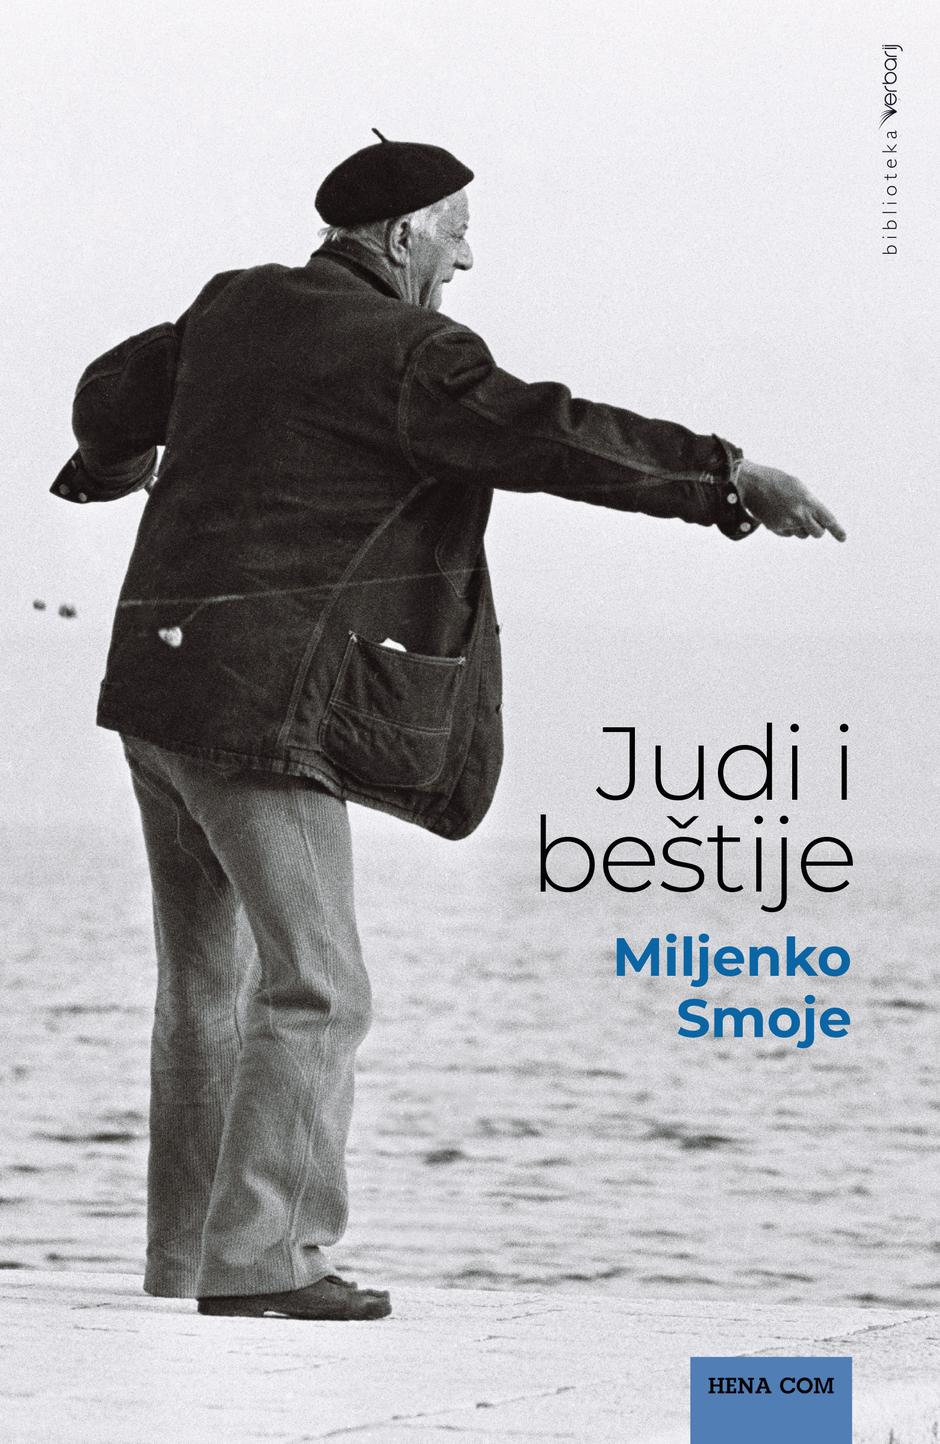 Miljenko Smoje | Author: Hena